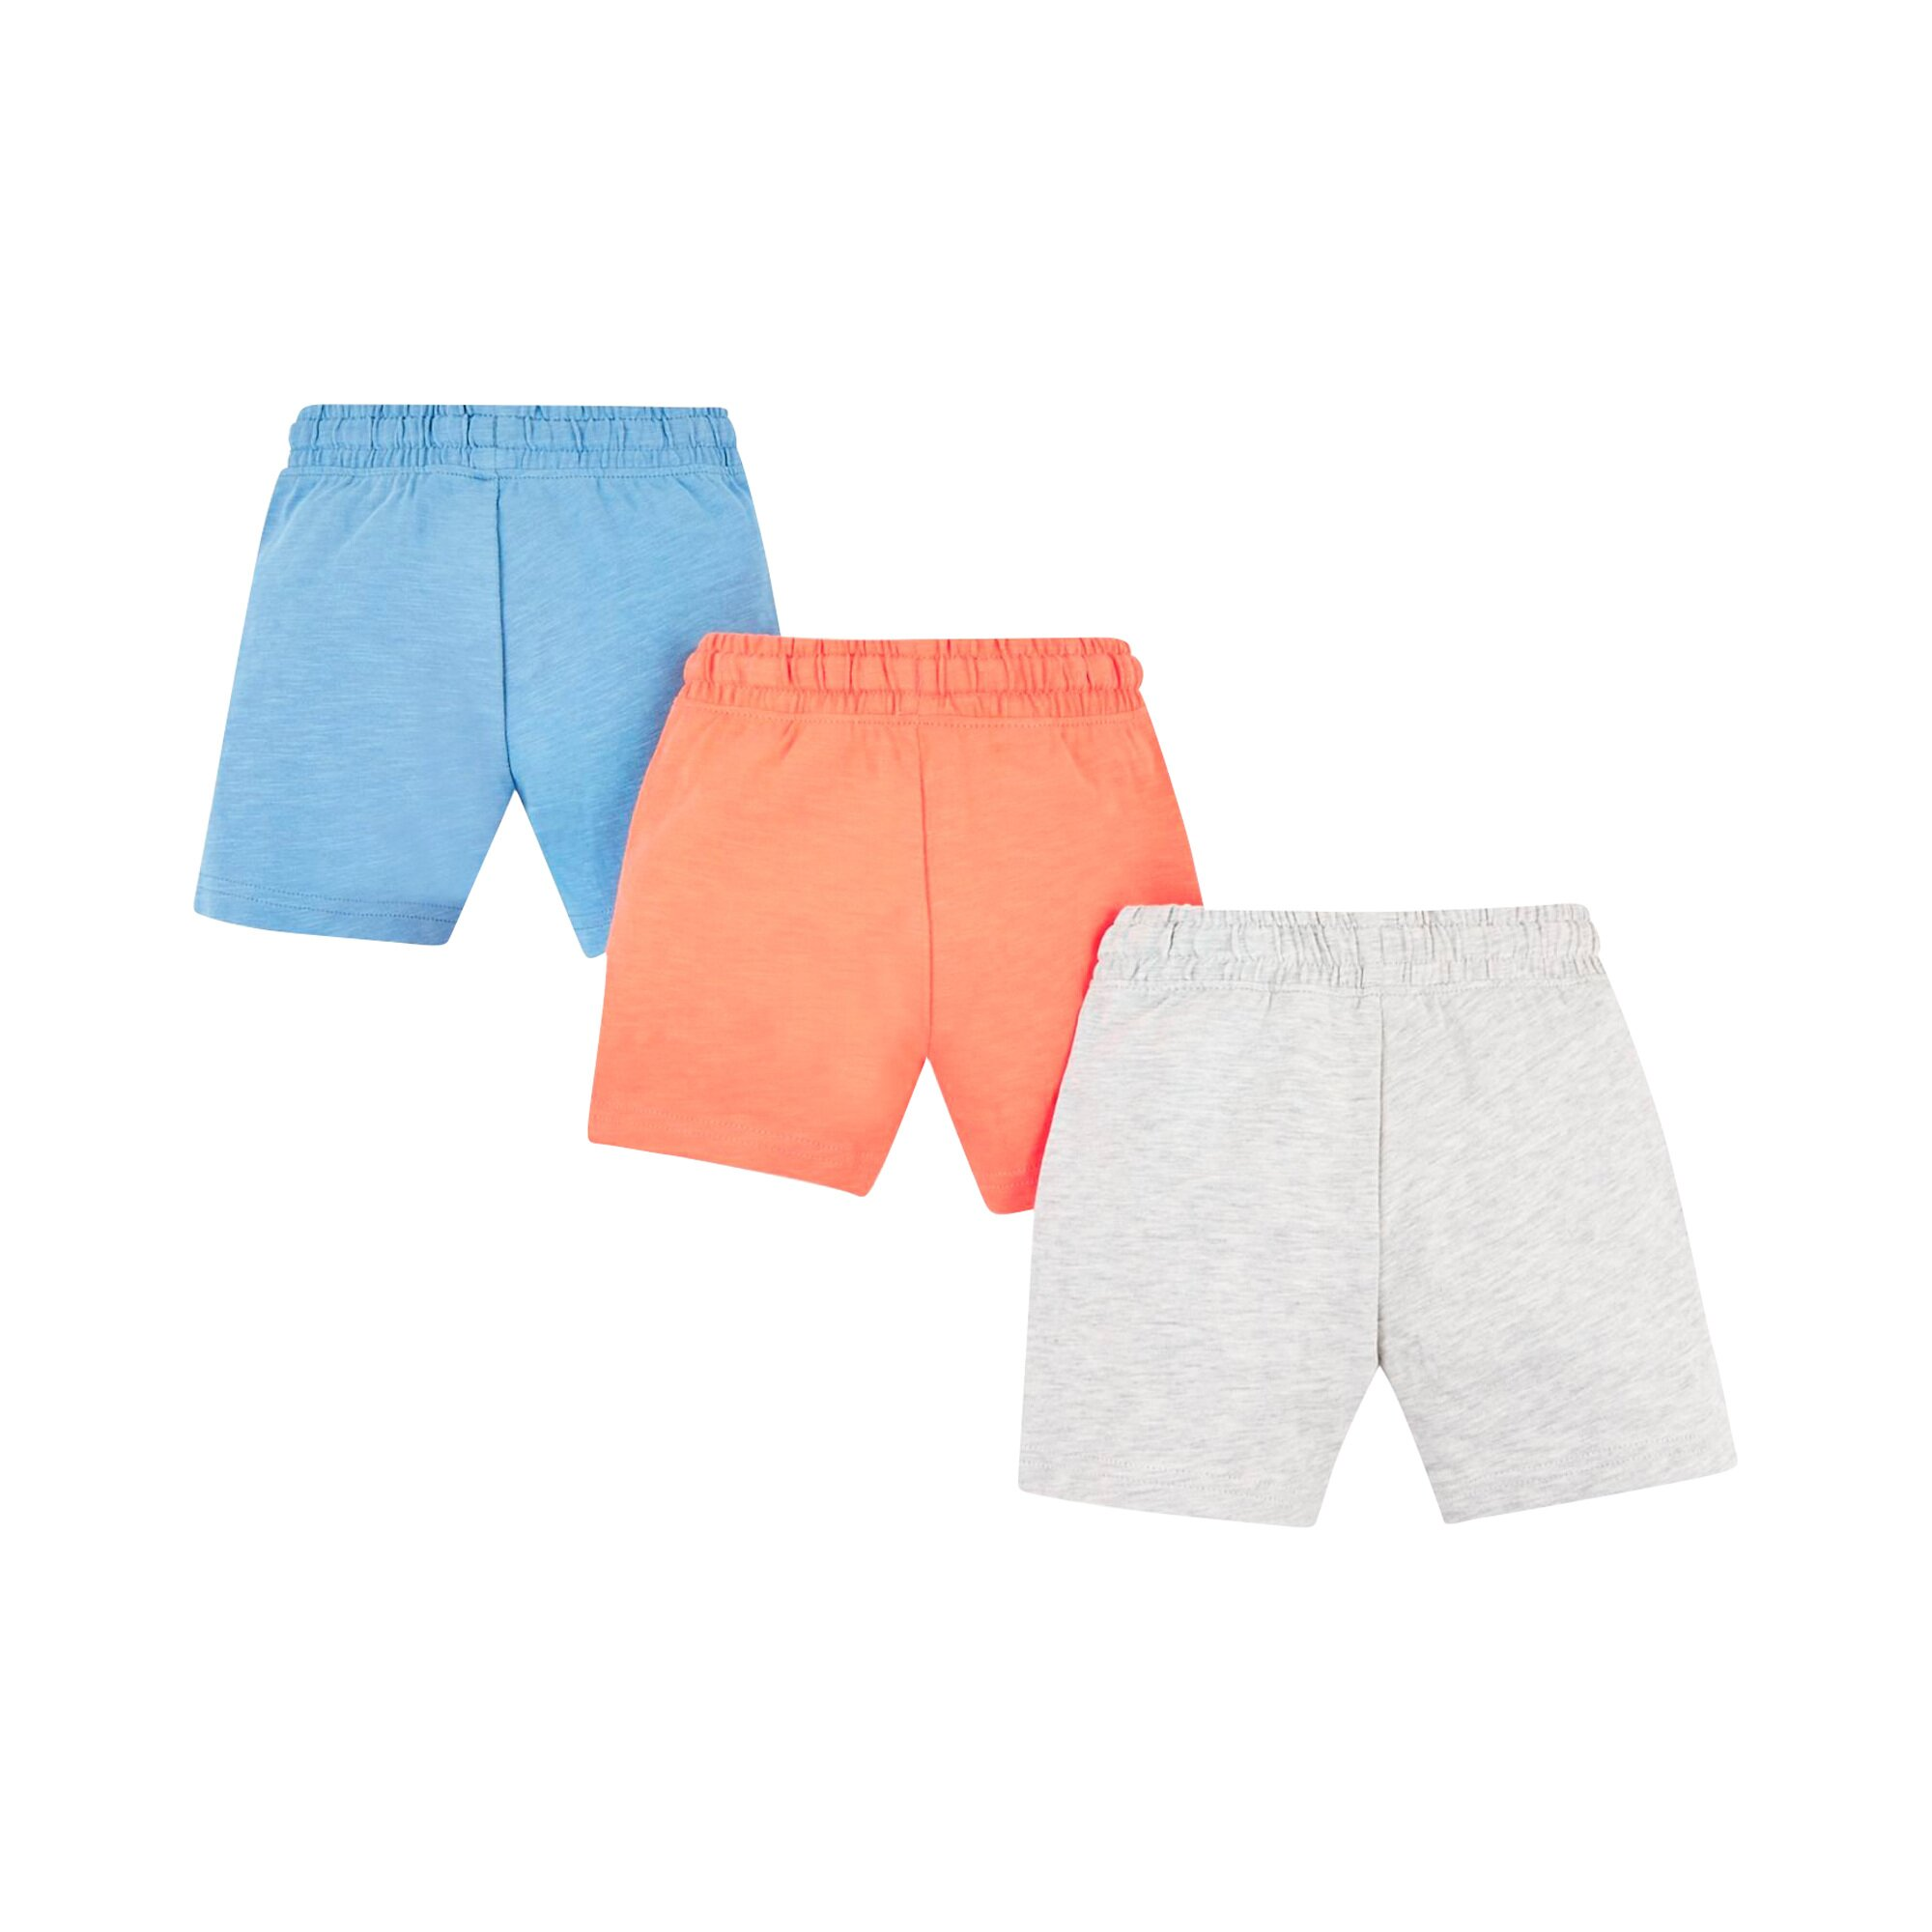 mothercare-3er-pack-shorts